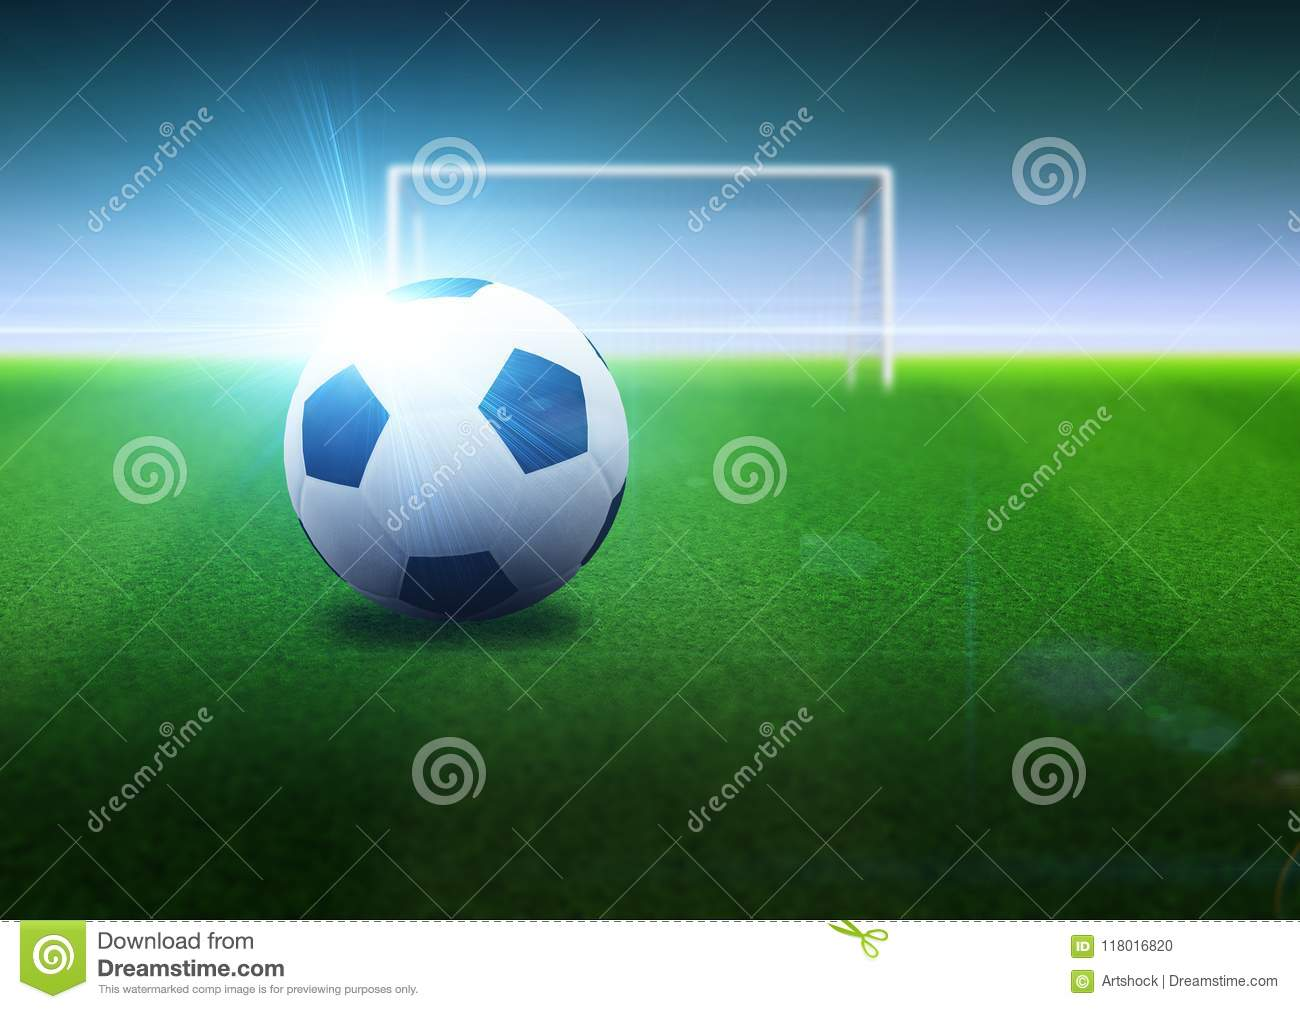 Soccer ball and goal on field